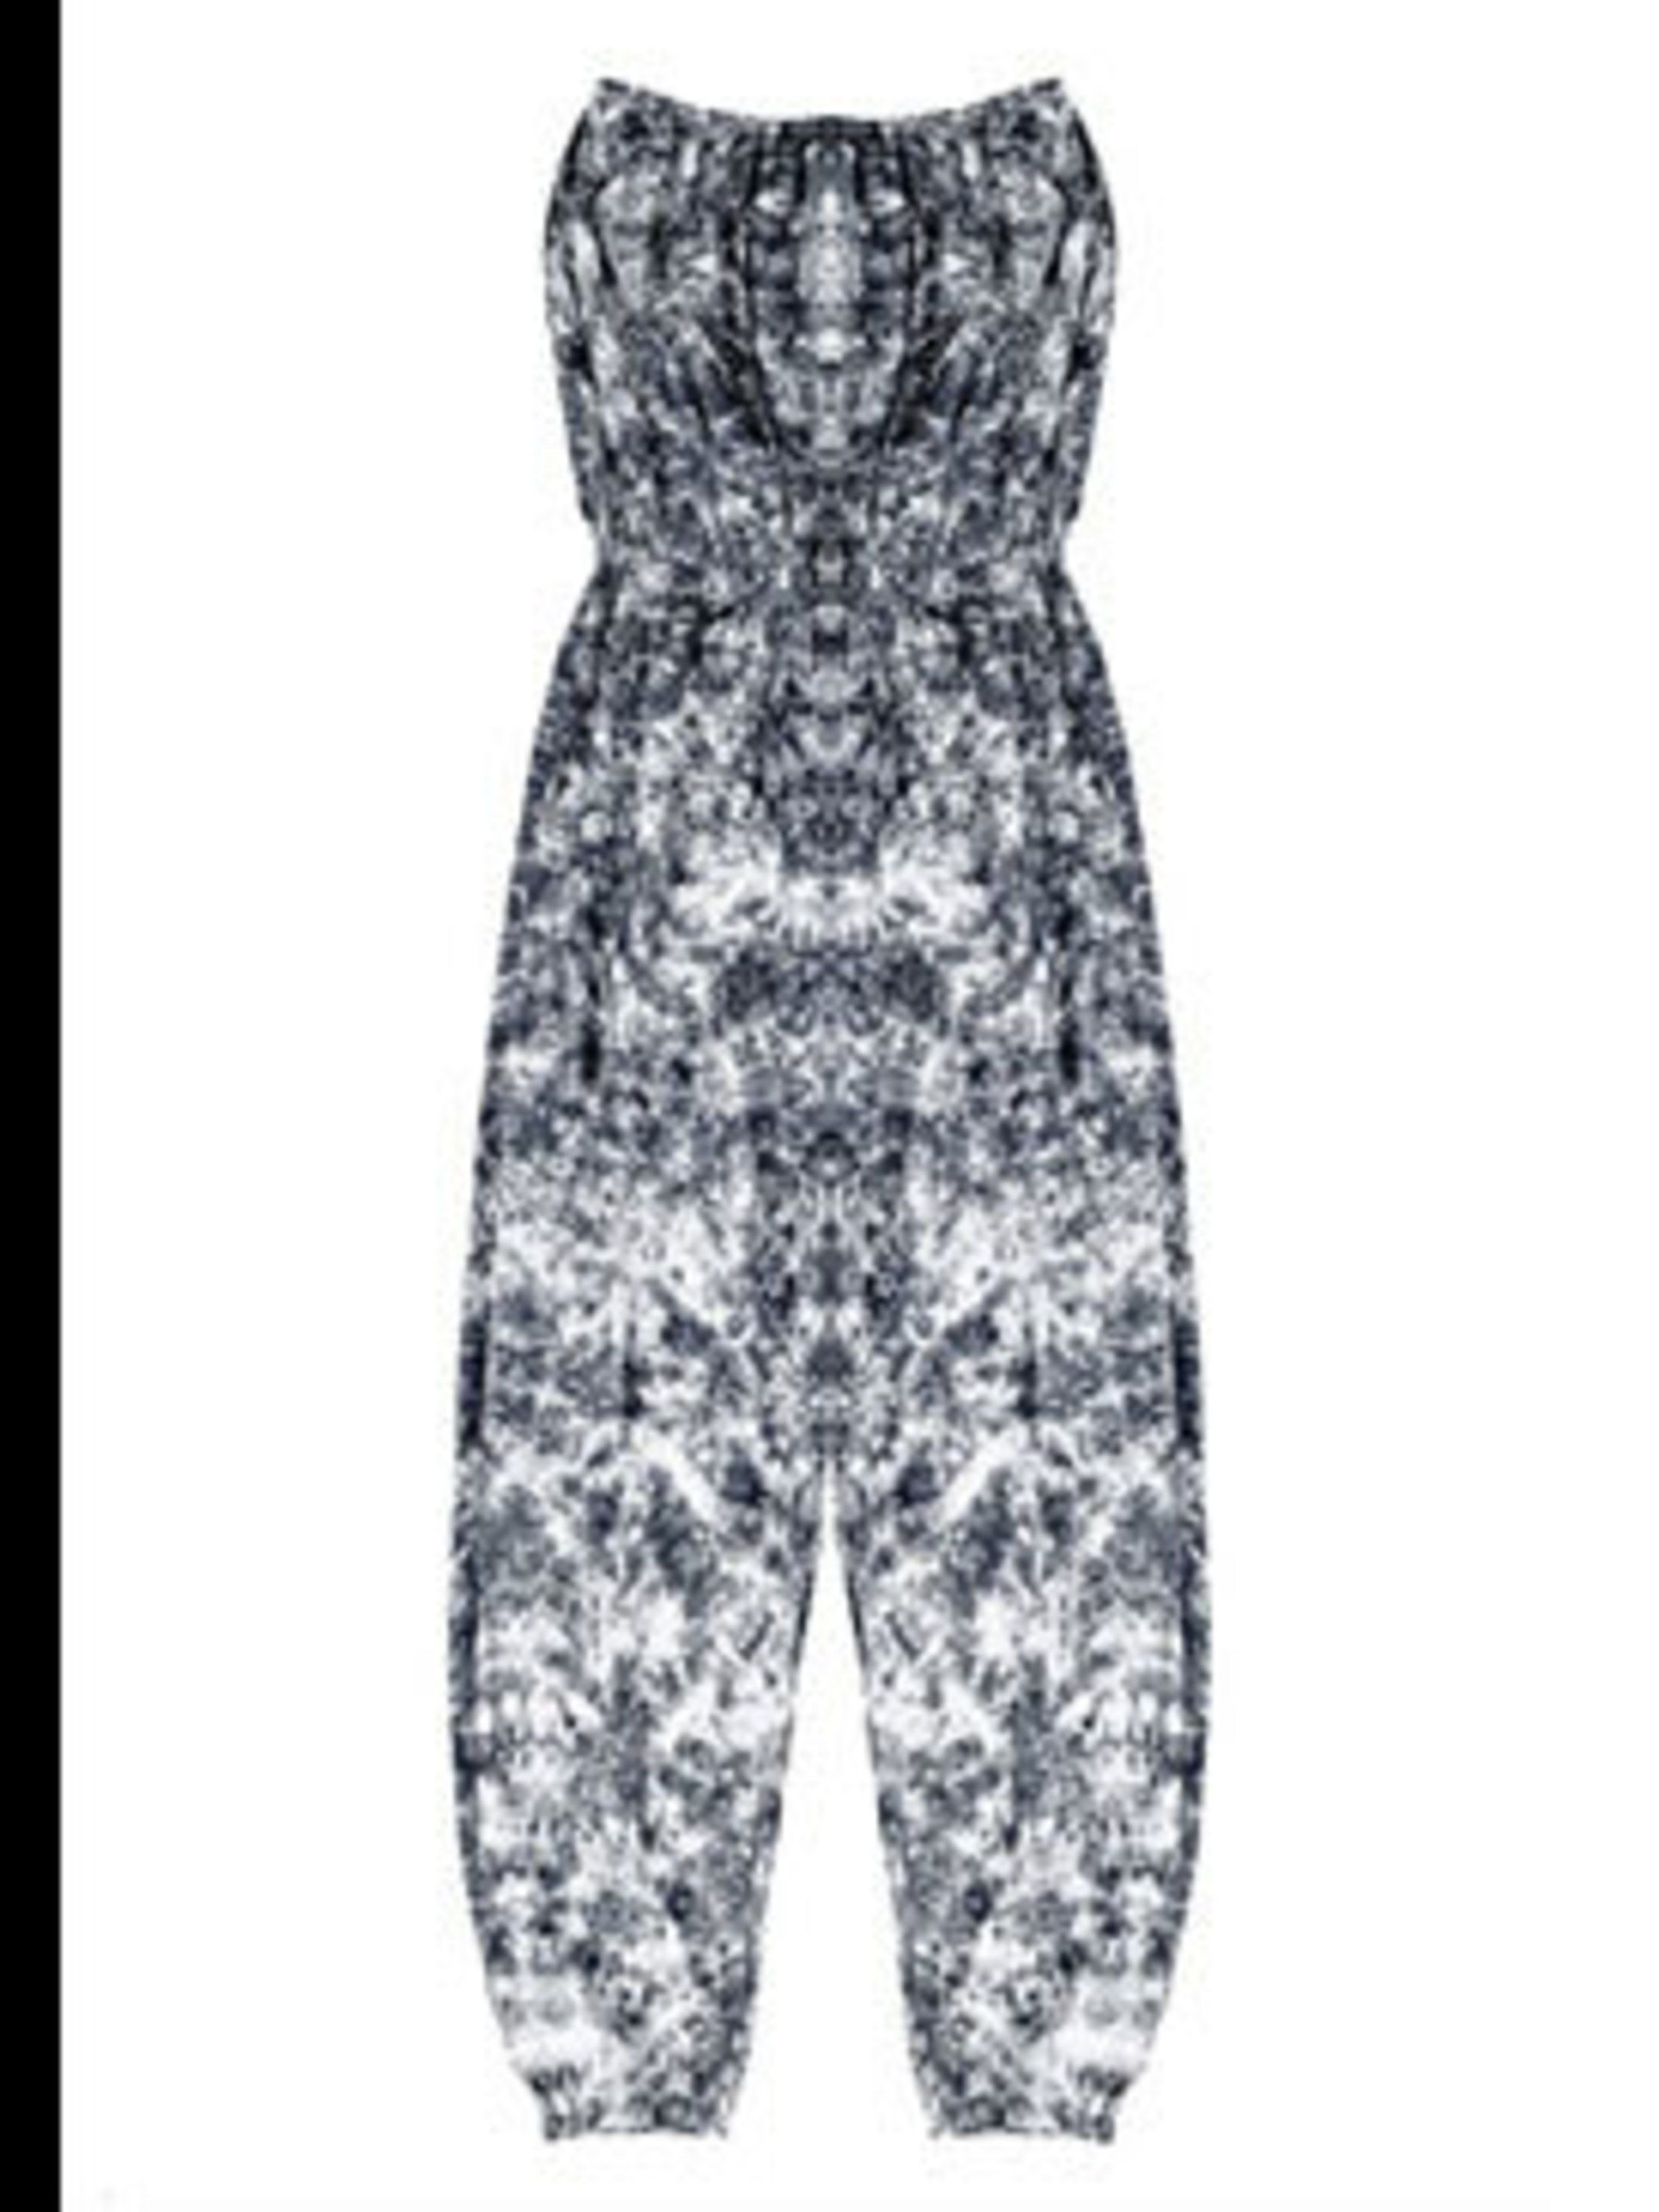 """<p>Jumpsuit £105 by Maurie&amp&#x3B;Eve at <a href=""""http://www.bunnyhug.co.uk/fashionshop/gbu0-prodshow/Maurie_and_Eve_Strapless_Jumpsuit_in_Black_Smoke.html"""">Bunnyhug</a></p>"""